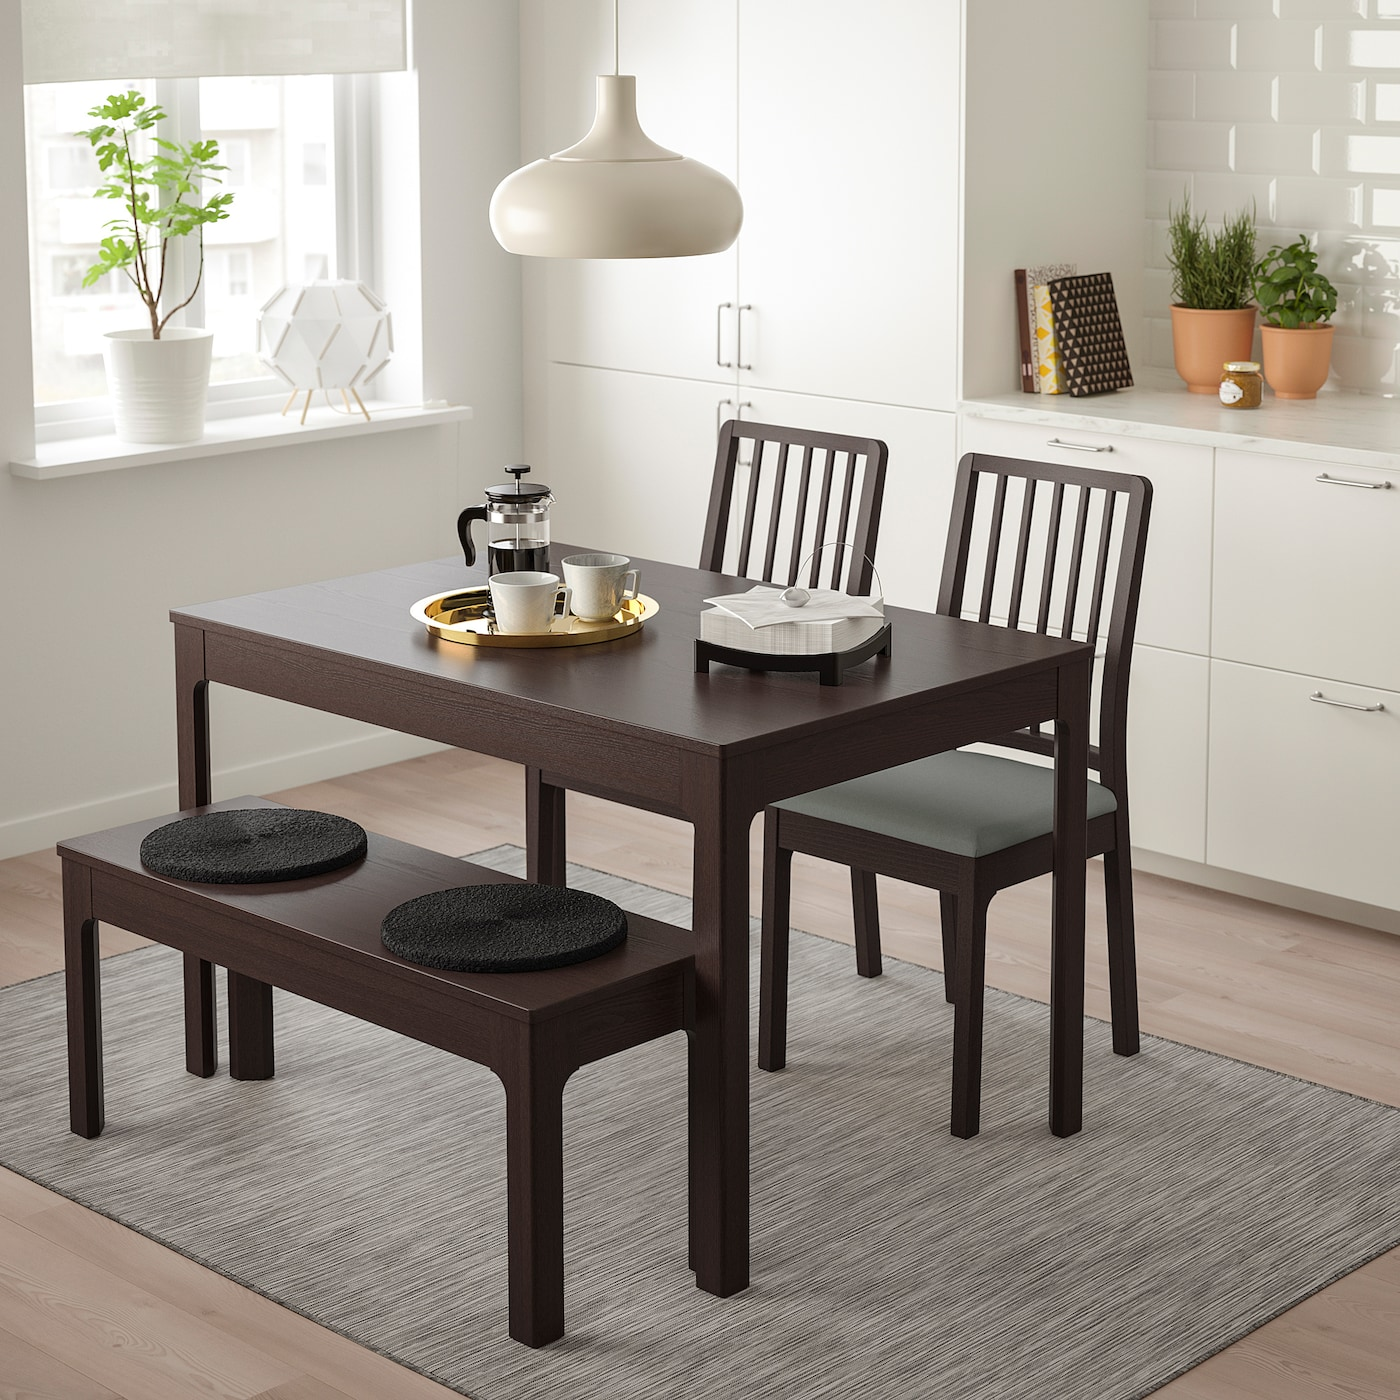 Ekedalen Ekedalen Table With 2 Chairs And Bench Dark Brown